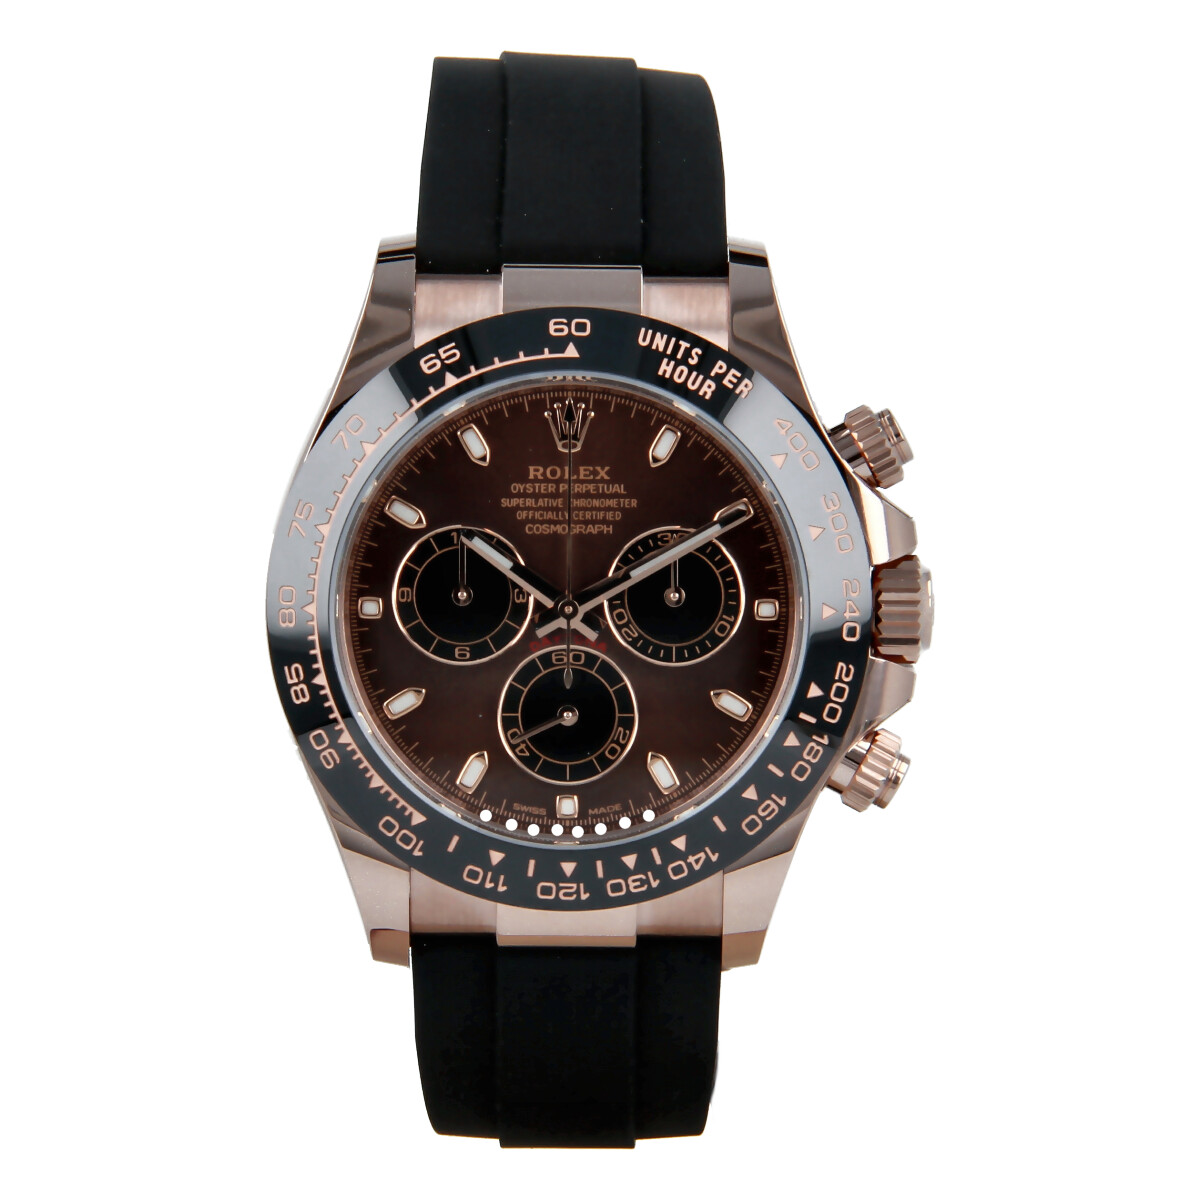 Rolex Cosmograph Daytona 116515LN Rose Gold Chocolate Dial *New* | Buy pre-owned Rolex watch